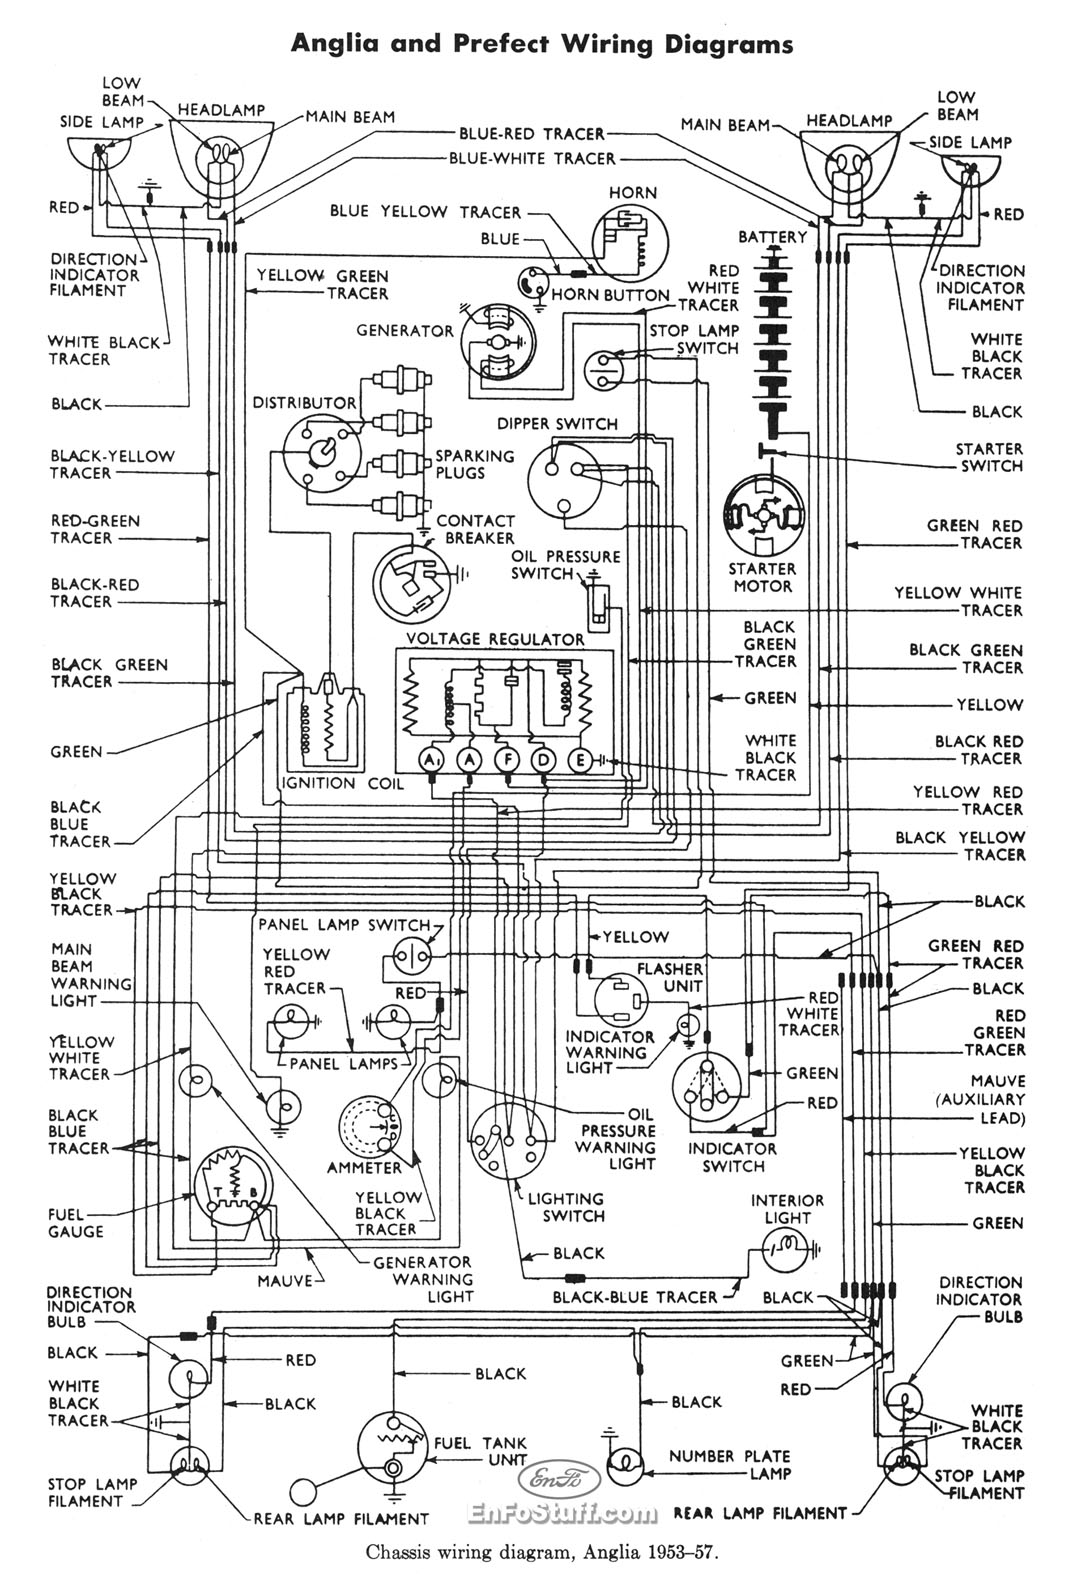 1977 ford 2000 tractor wiring diagram Ford 2000 Diesel Tractor Wiring Diagram ford 2000 tractor parts diagram wiring diagram todays parts for ford 3000 tractor wiring diagram for a 1972 ford 3000 tractor